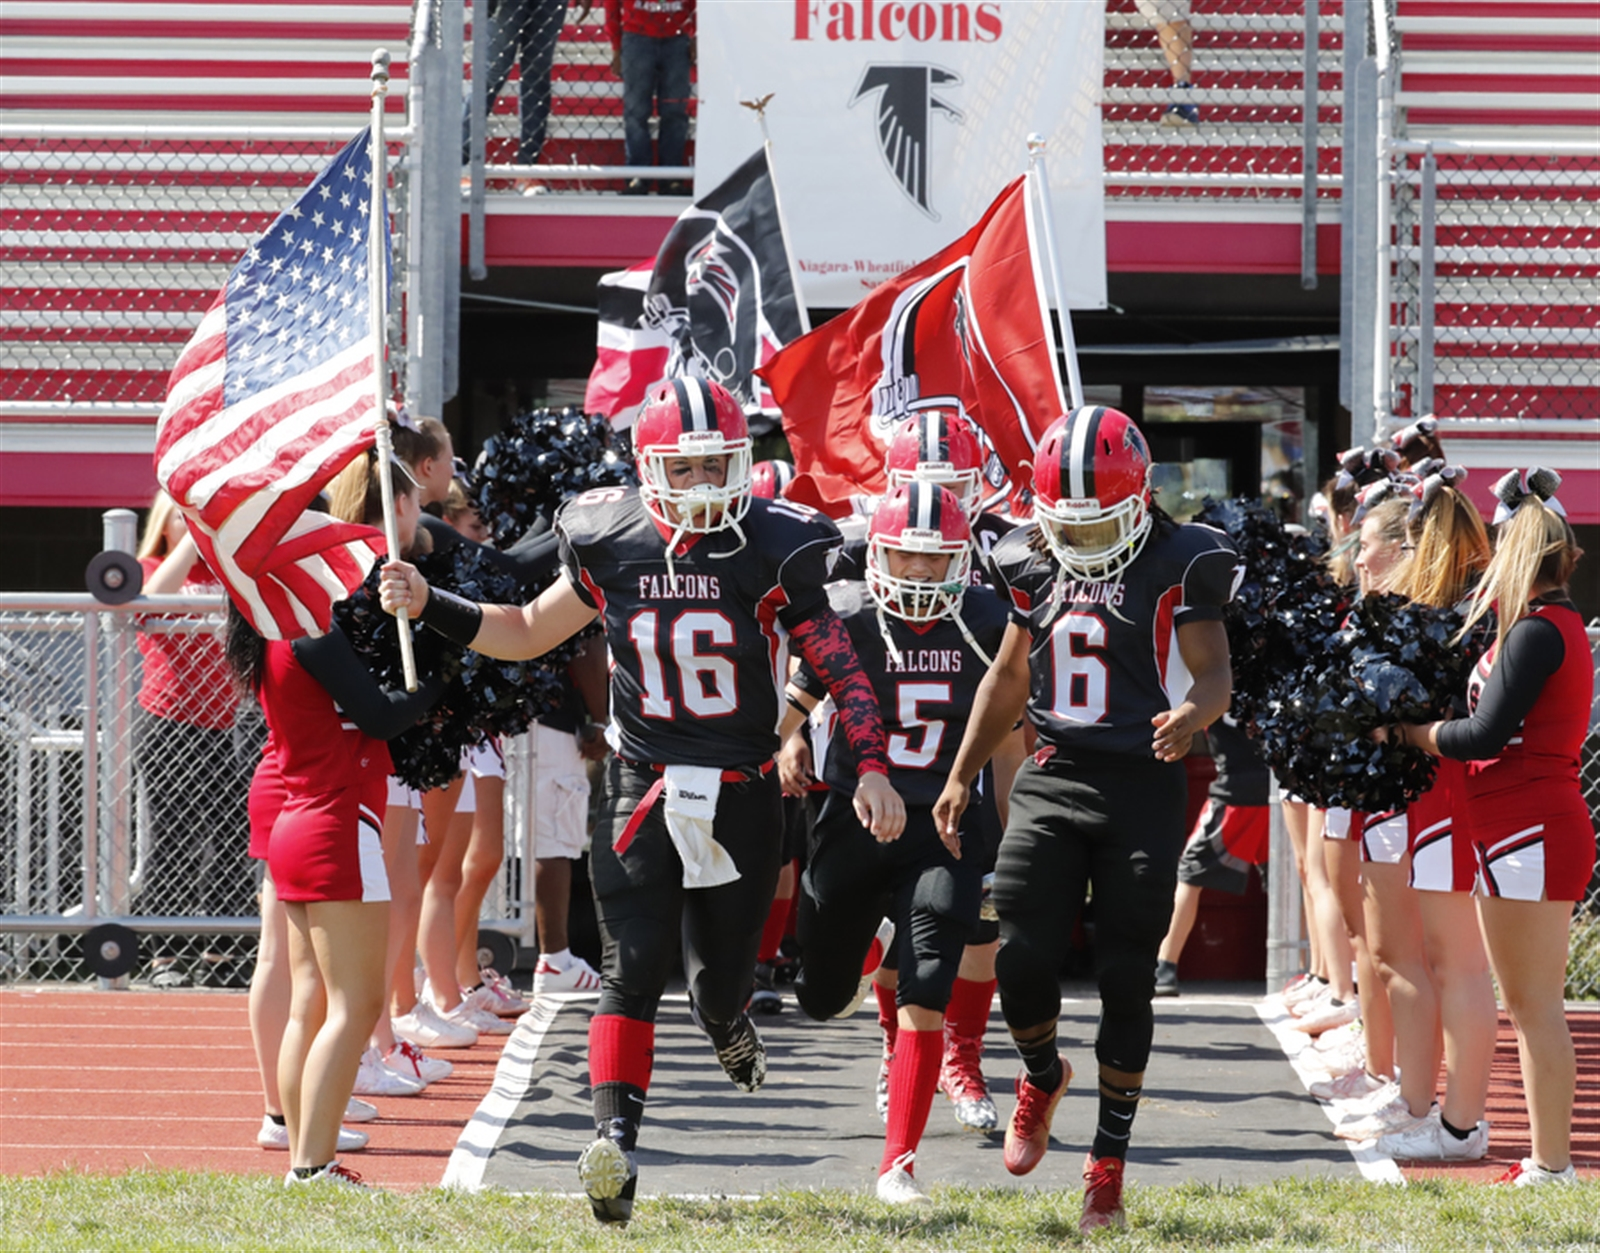 Niagara Wheatfield's Phil Mona carries the American flag during introductions prior to playing Grand Island at Niagara Wheatfield High school on Saturday, Sept. 3, 2016.